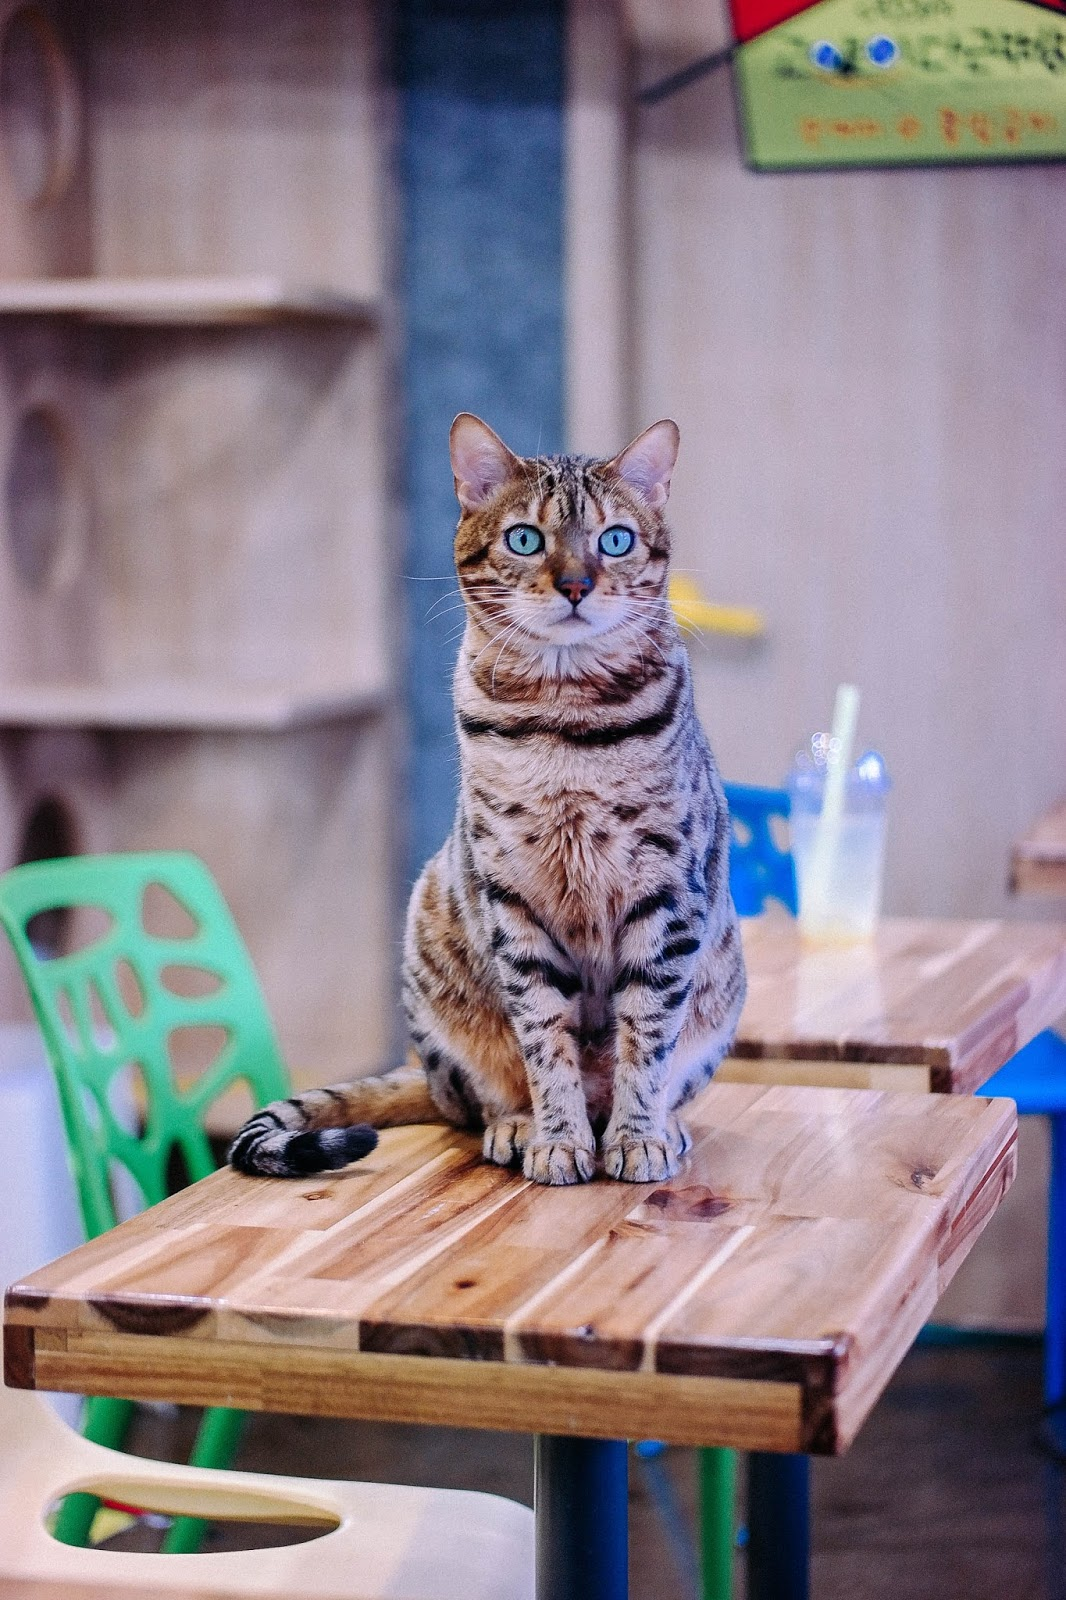 Attic Cat Godabang Cat Cafe in Myeongdong Seoul